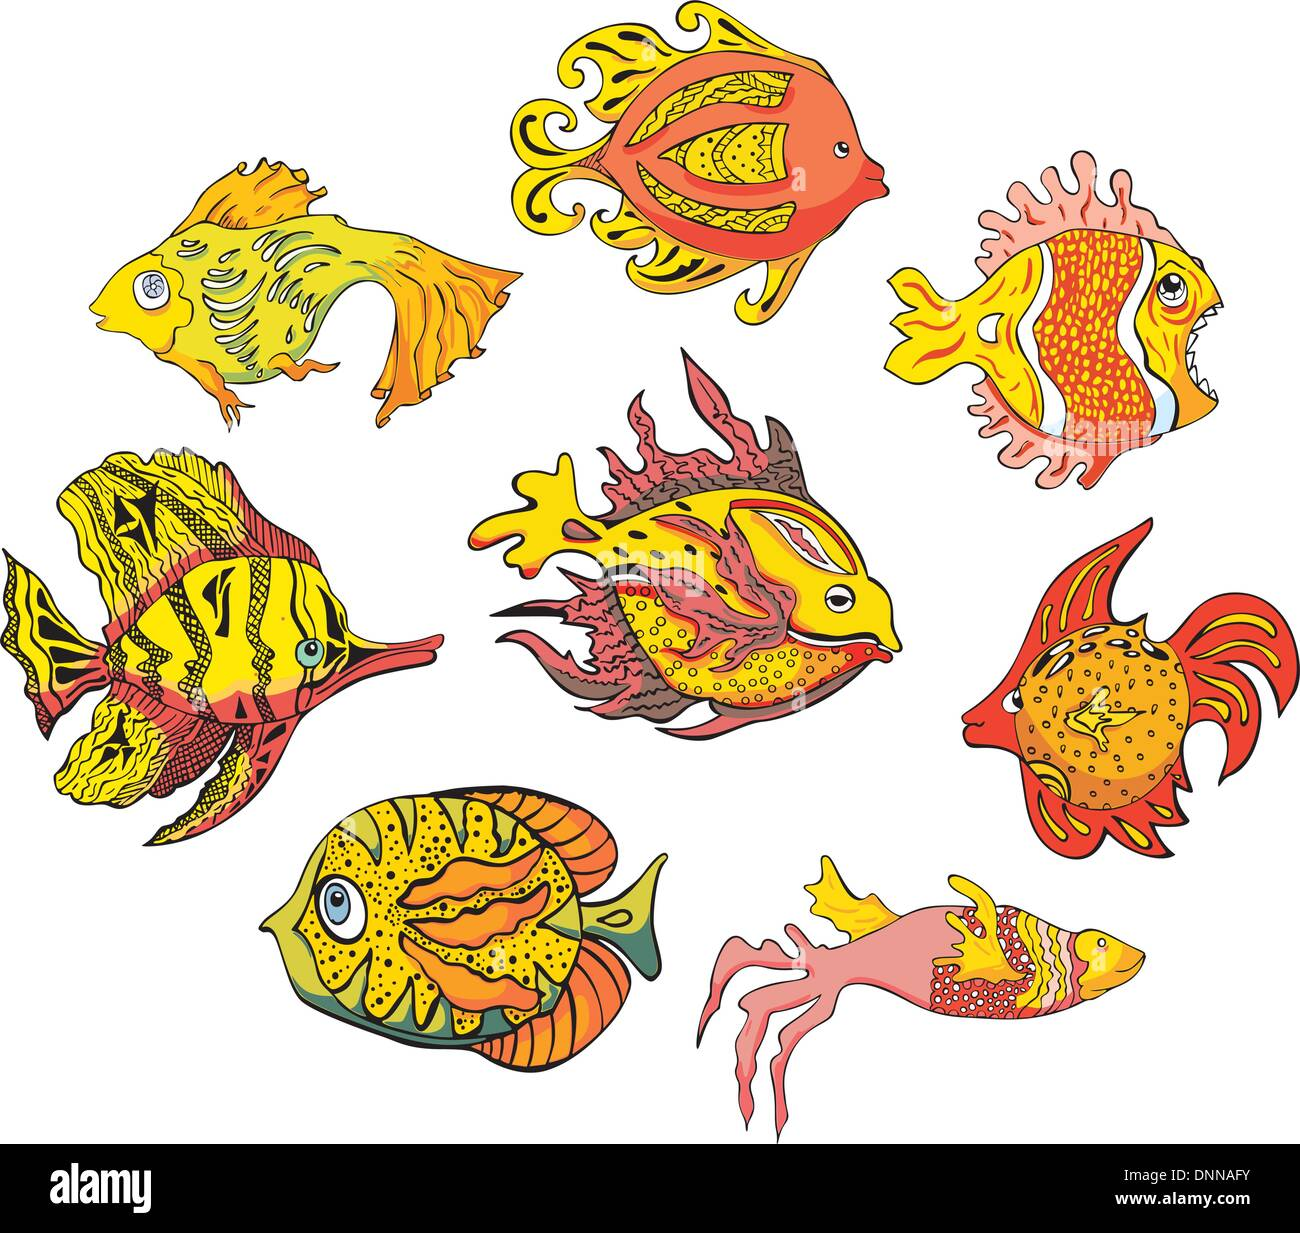 Motley tropical fish. Set of color vector illustrations. - Stock Image